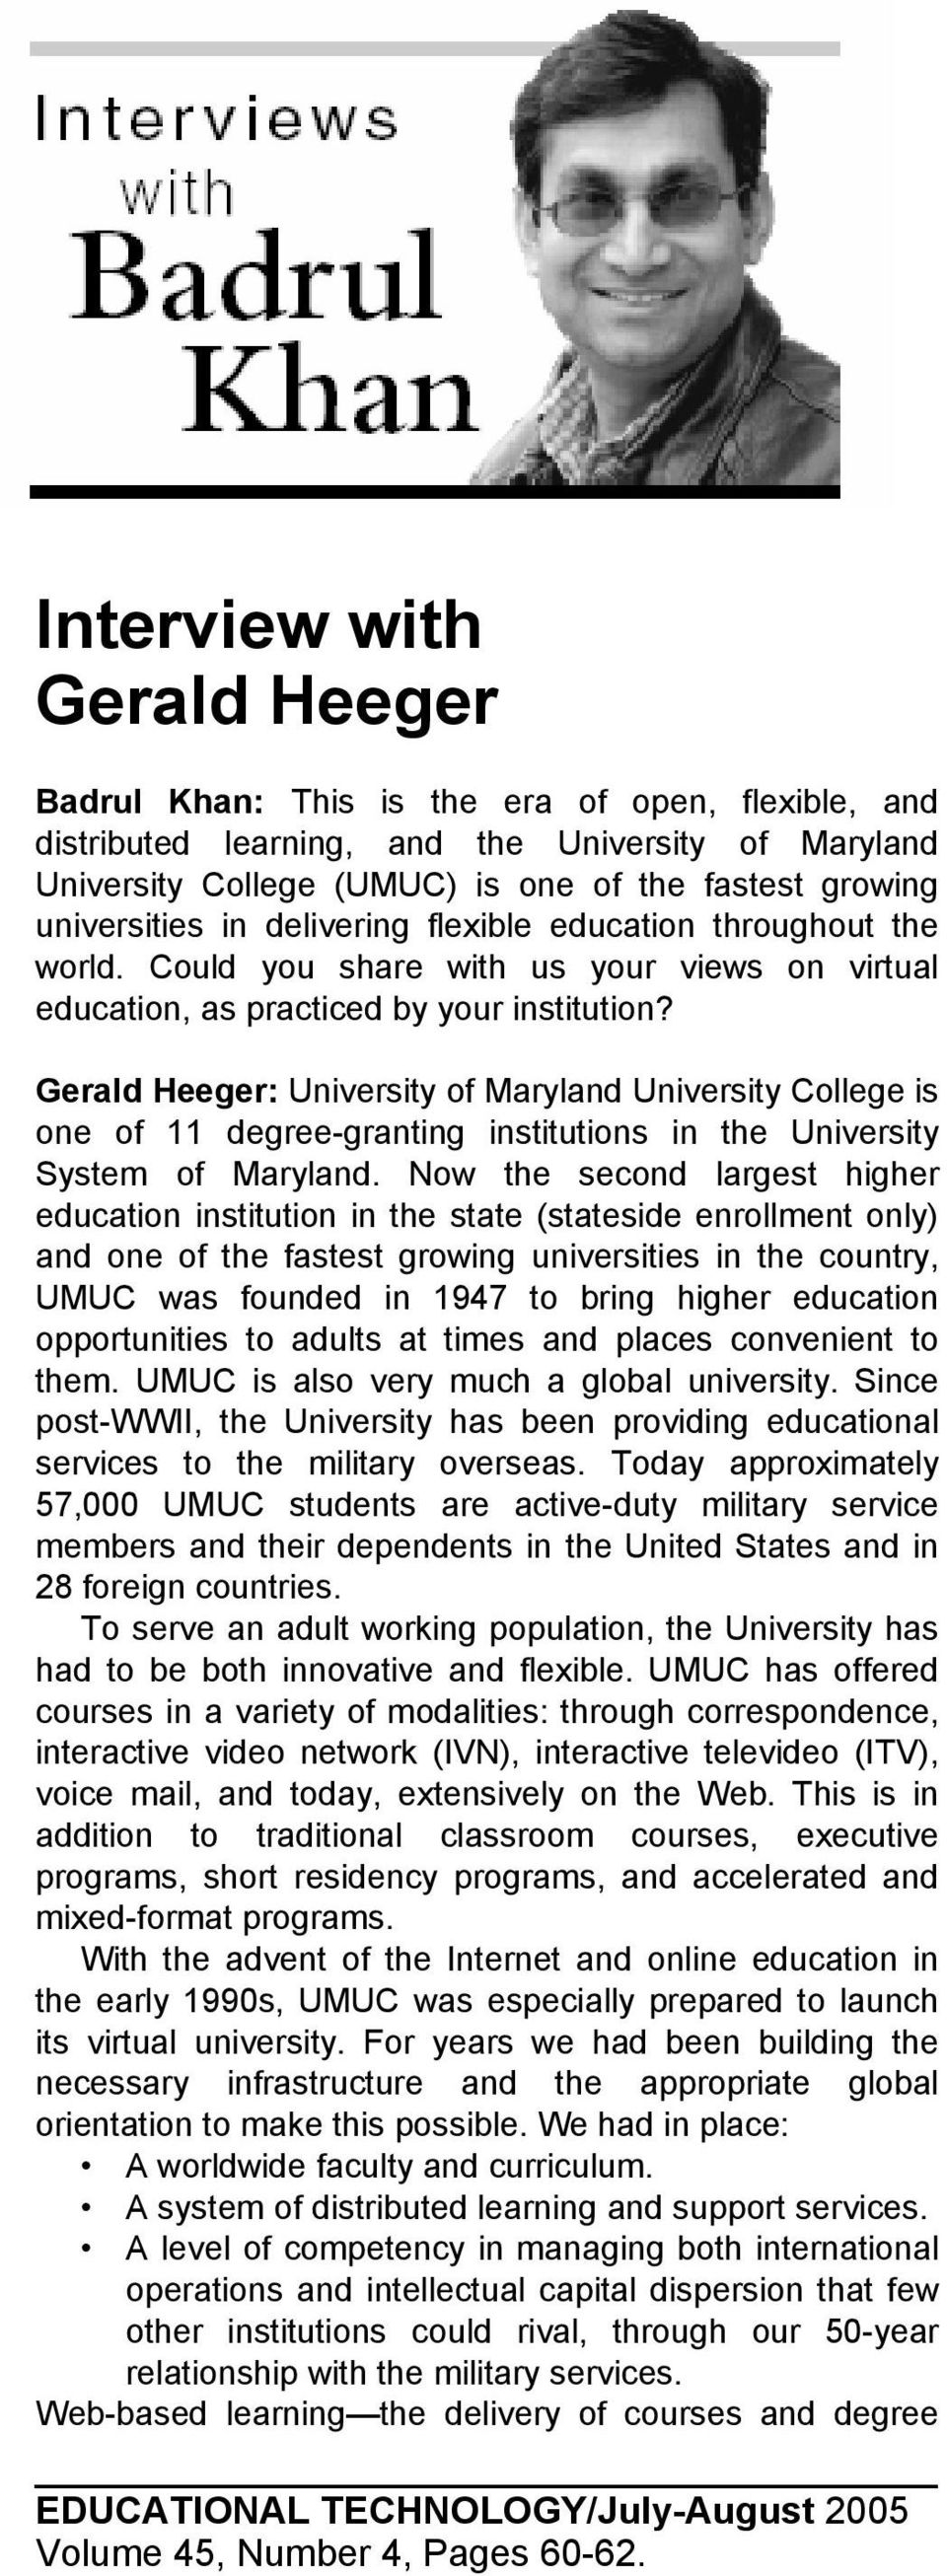 Gerald Heeger: University of Maryland University College is one of 11 degree-granting institutions in the University System of Maryland.